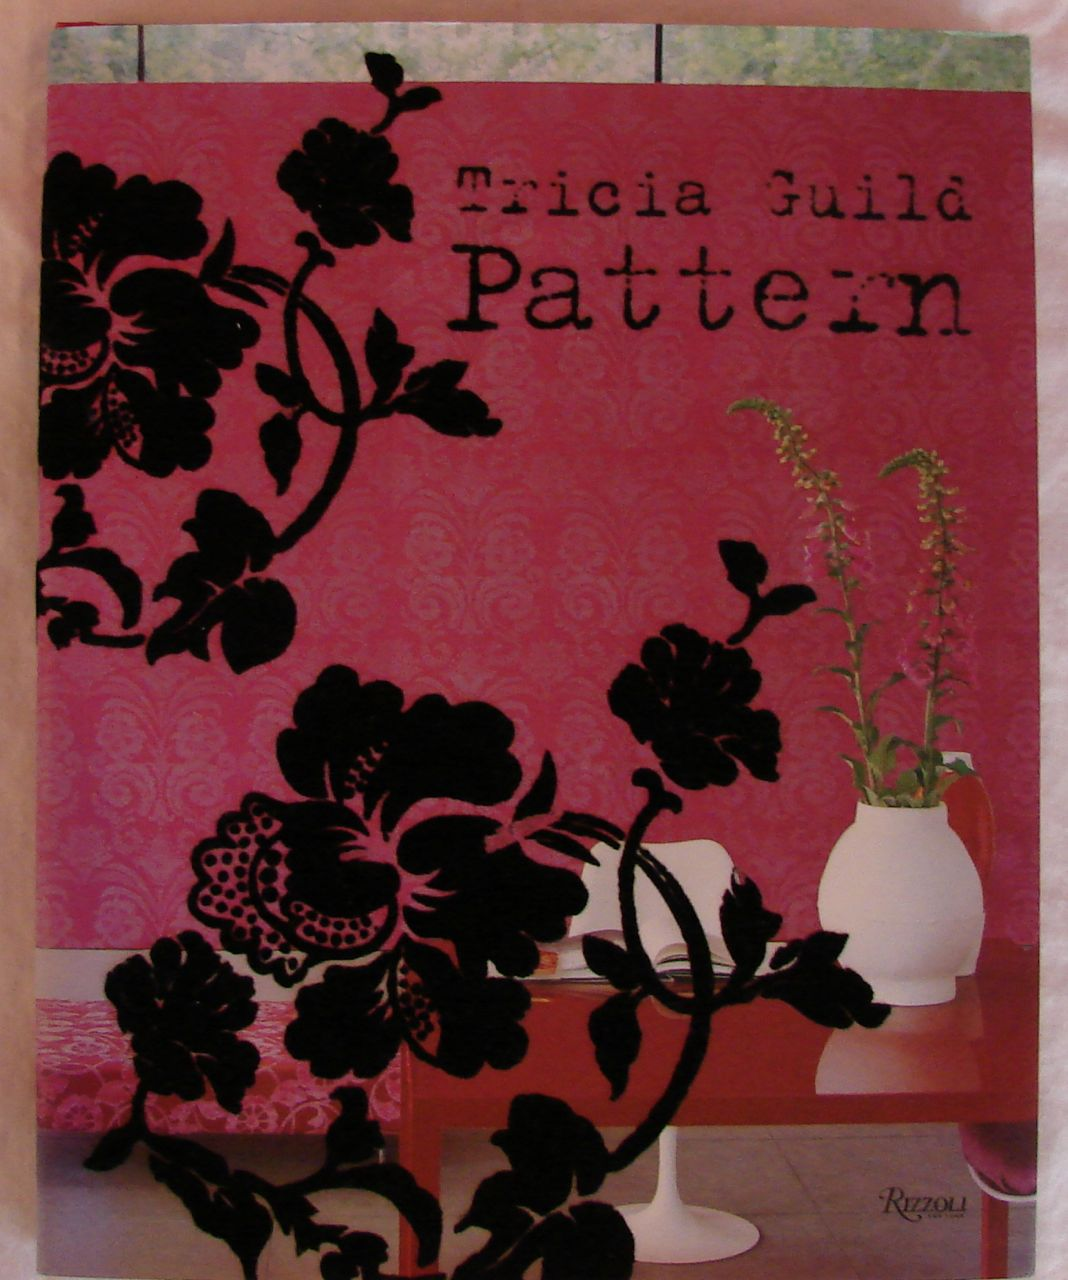 Image for Tricia Guild Pattern: Using Pattern to Create Sophisticated, Show-stopping Interiors